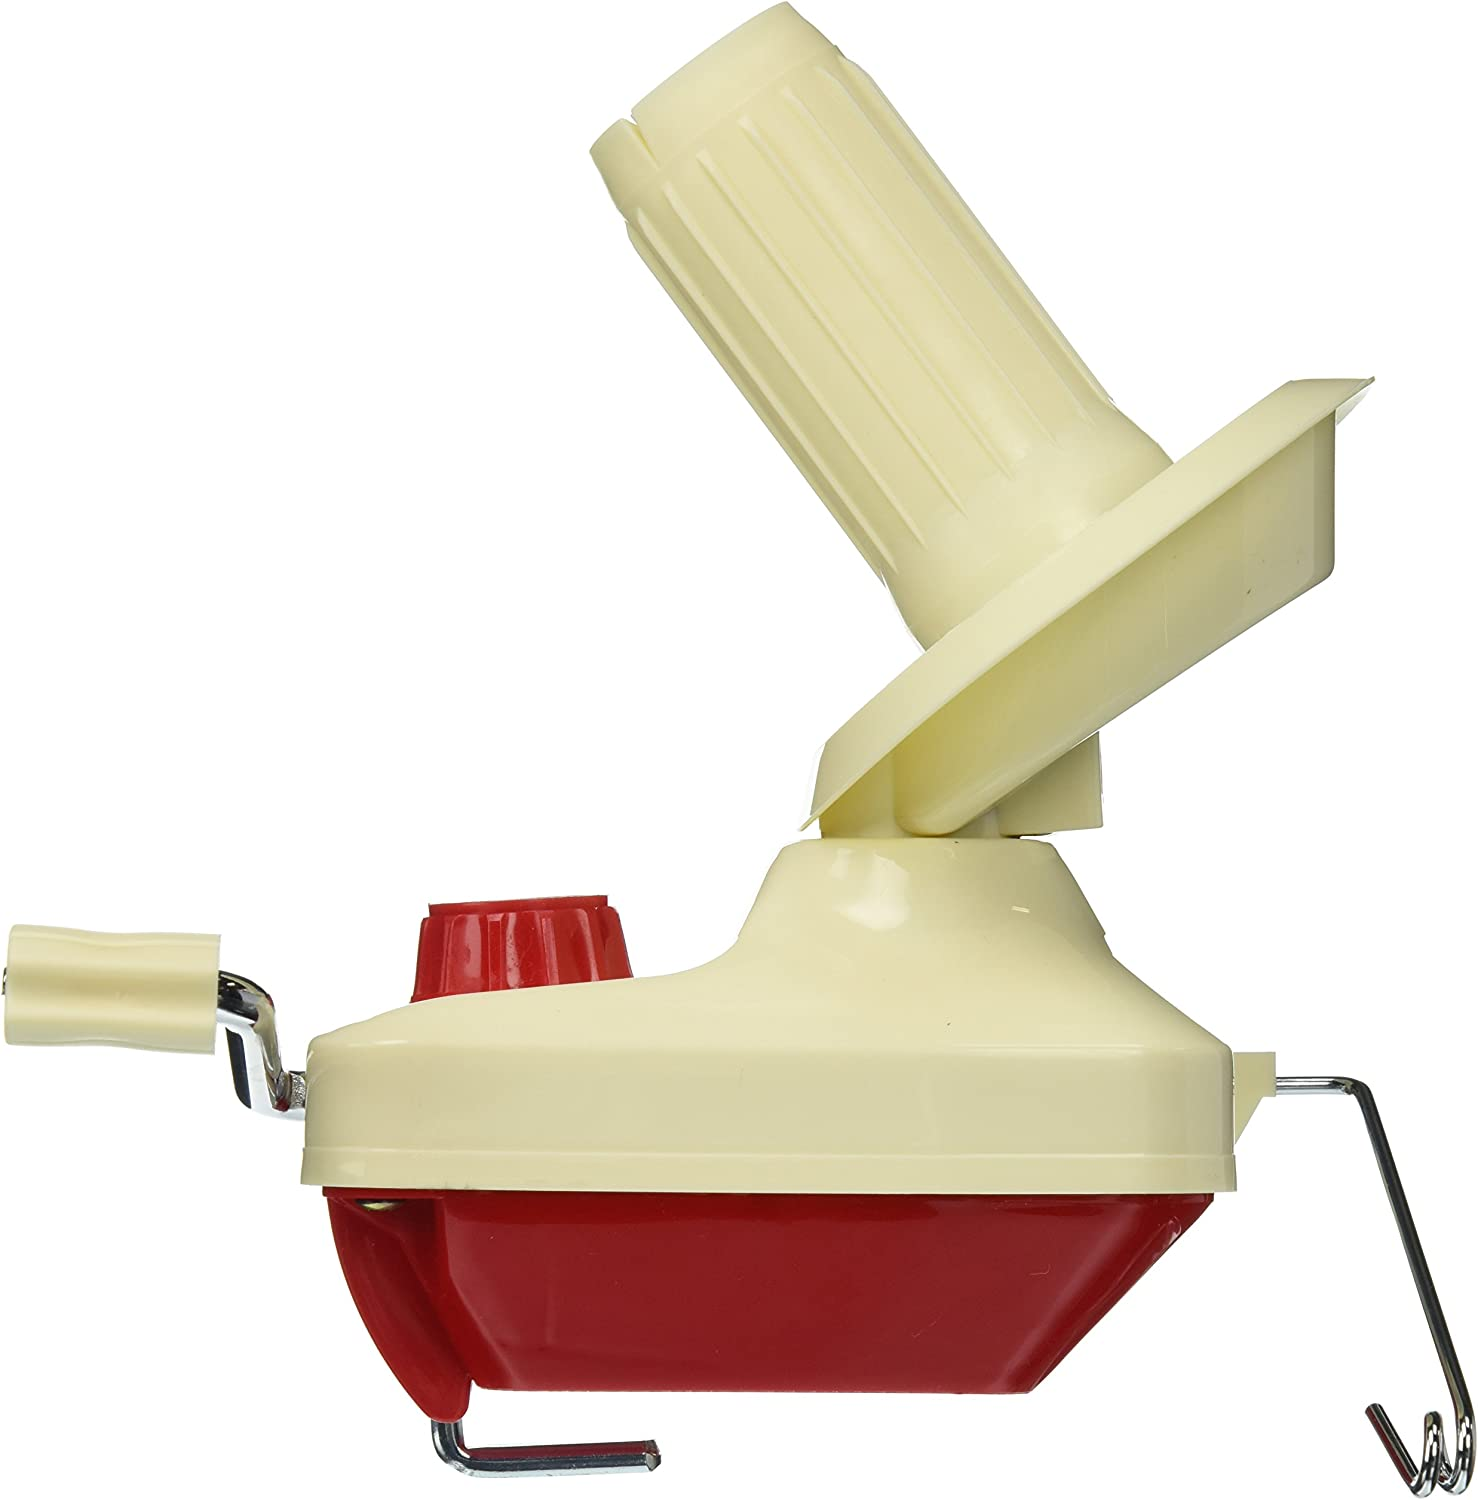 Best for winding large skeins- Lacis Yarn Ball Winder II